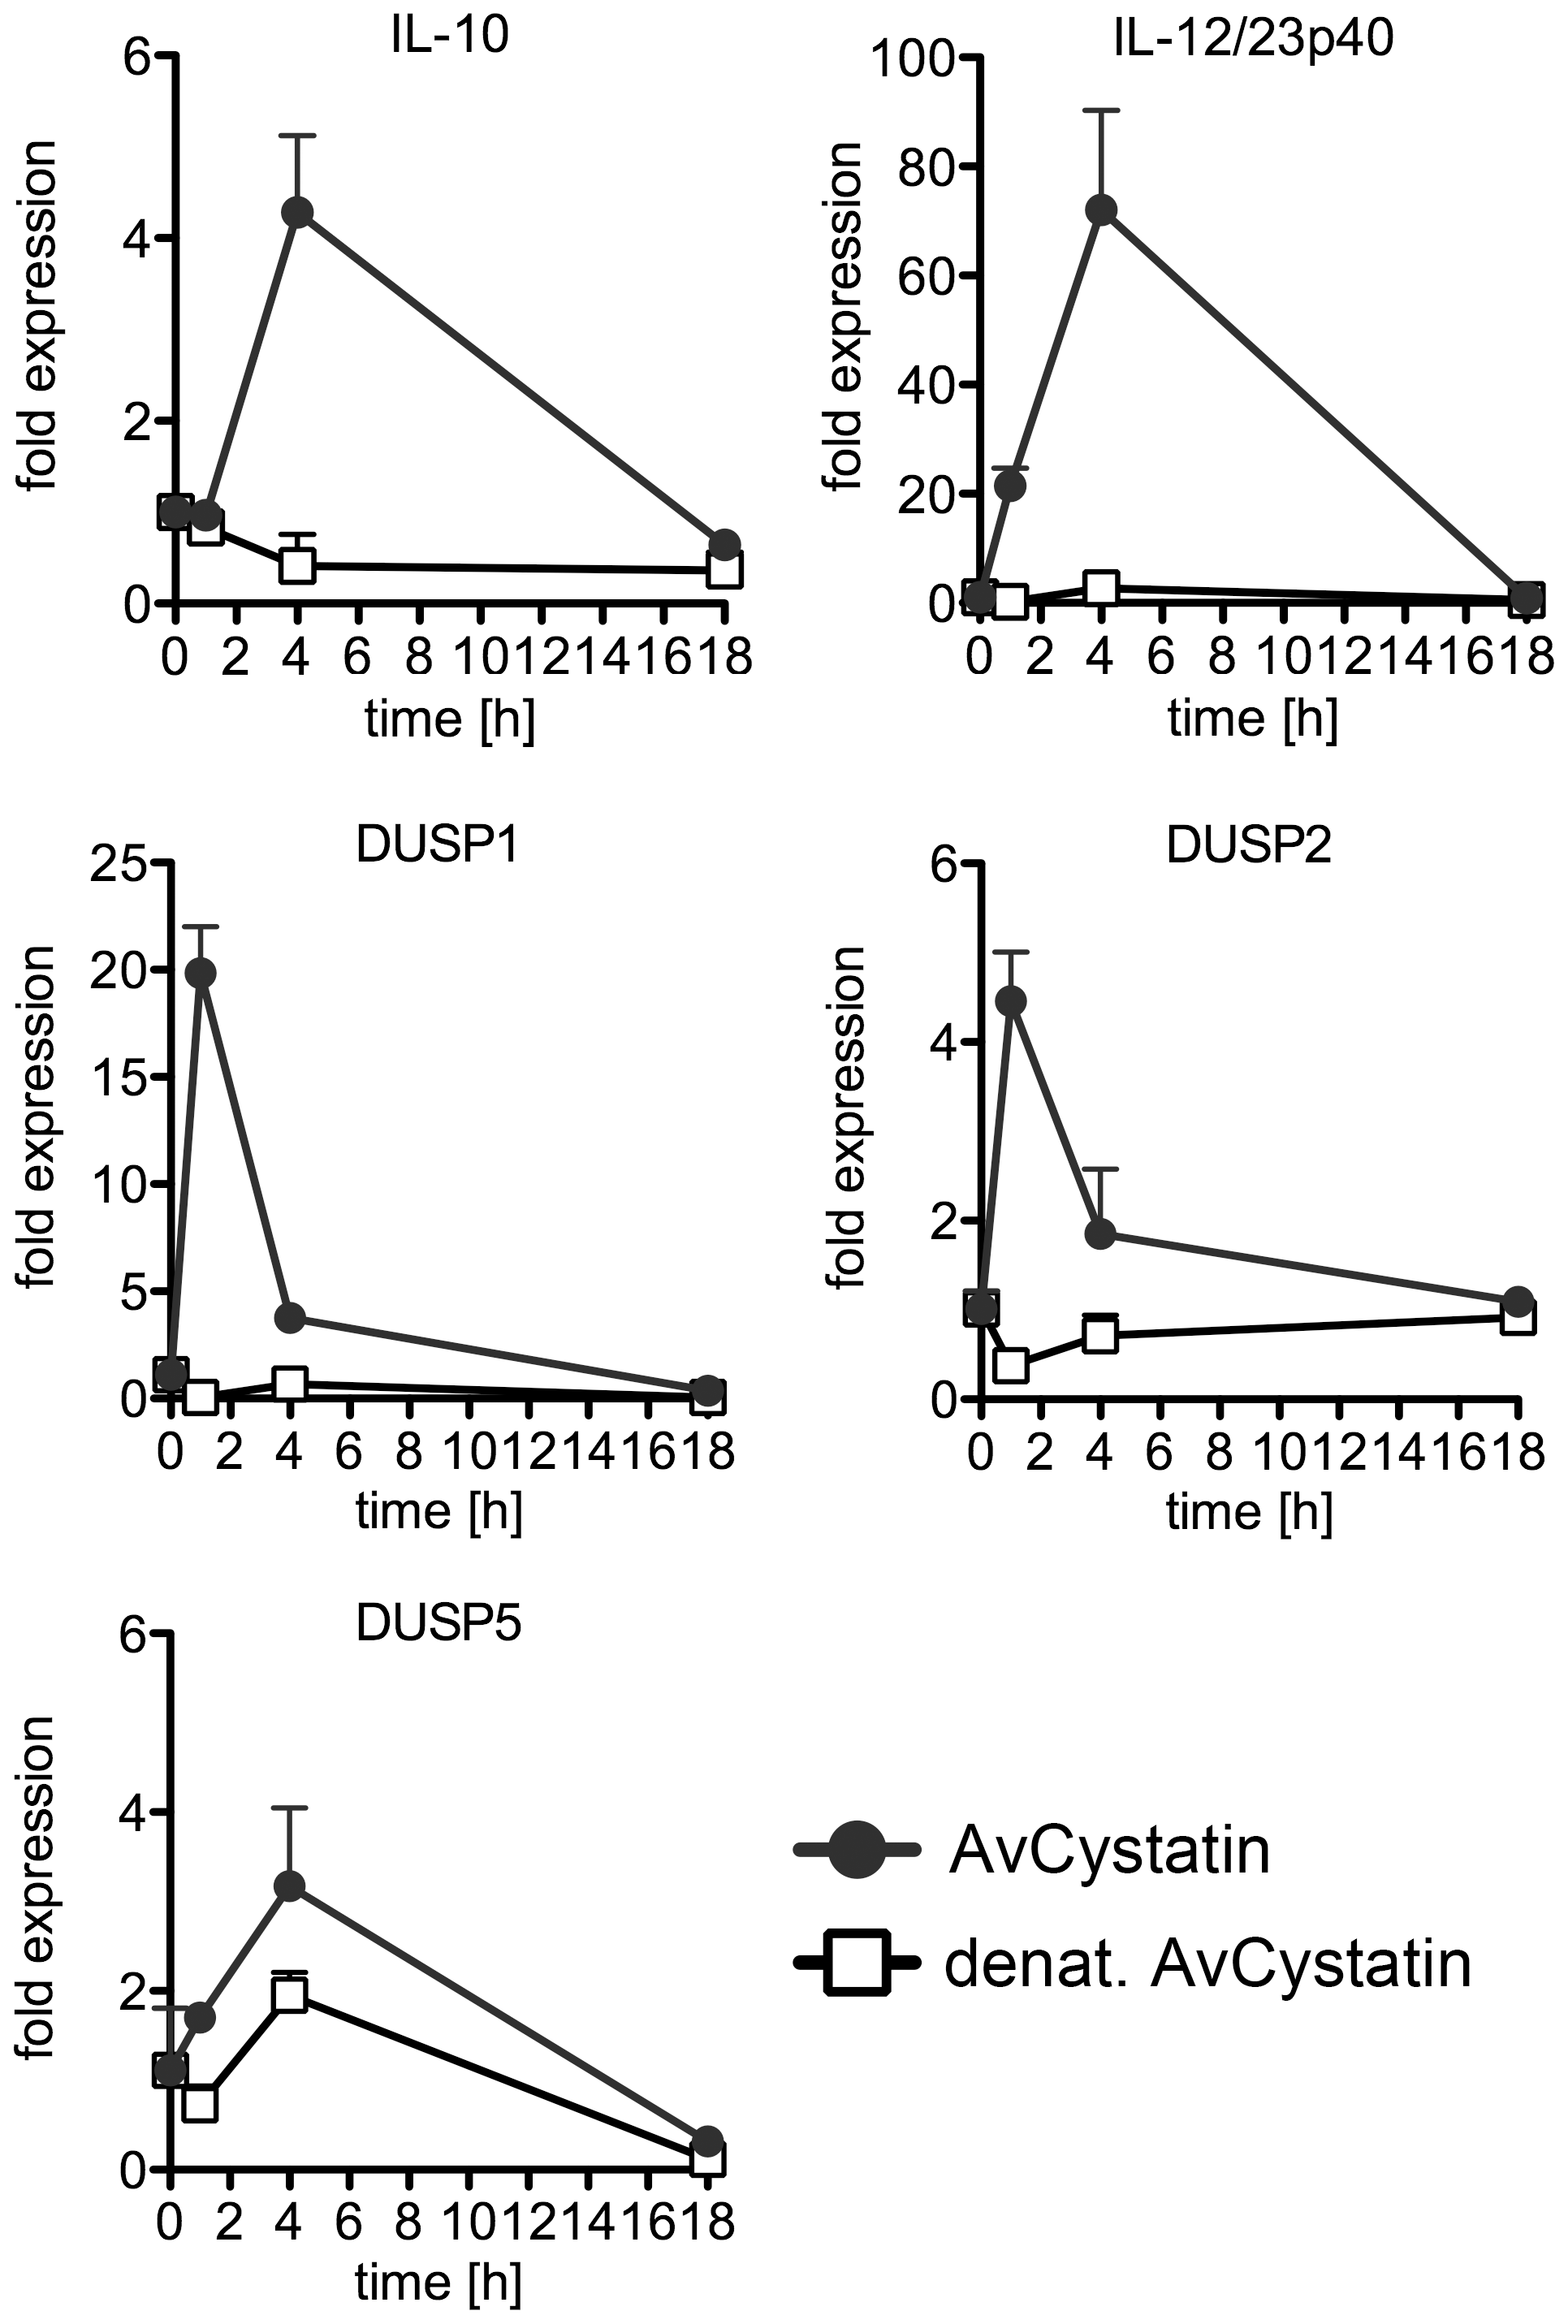 <i>In vivo</i> effect of AvCystatin confirms cytokine and DUSP expression.